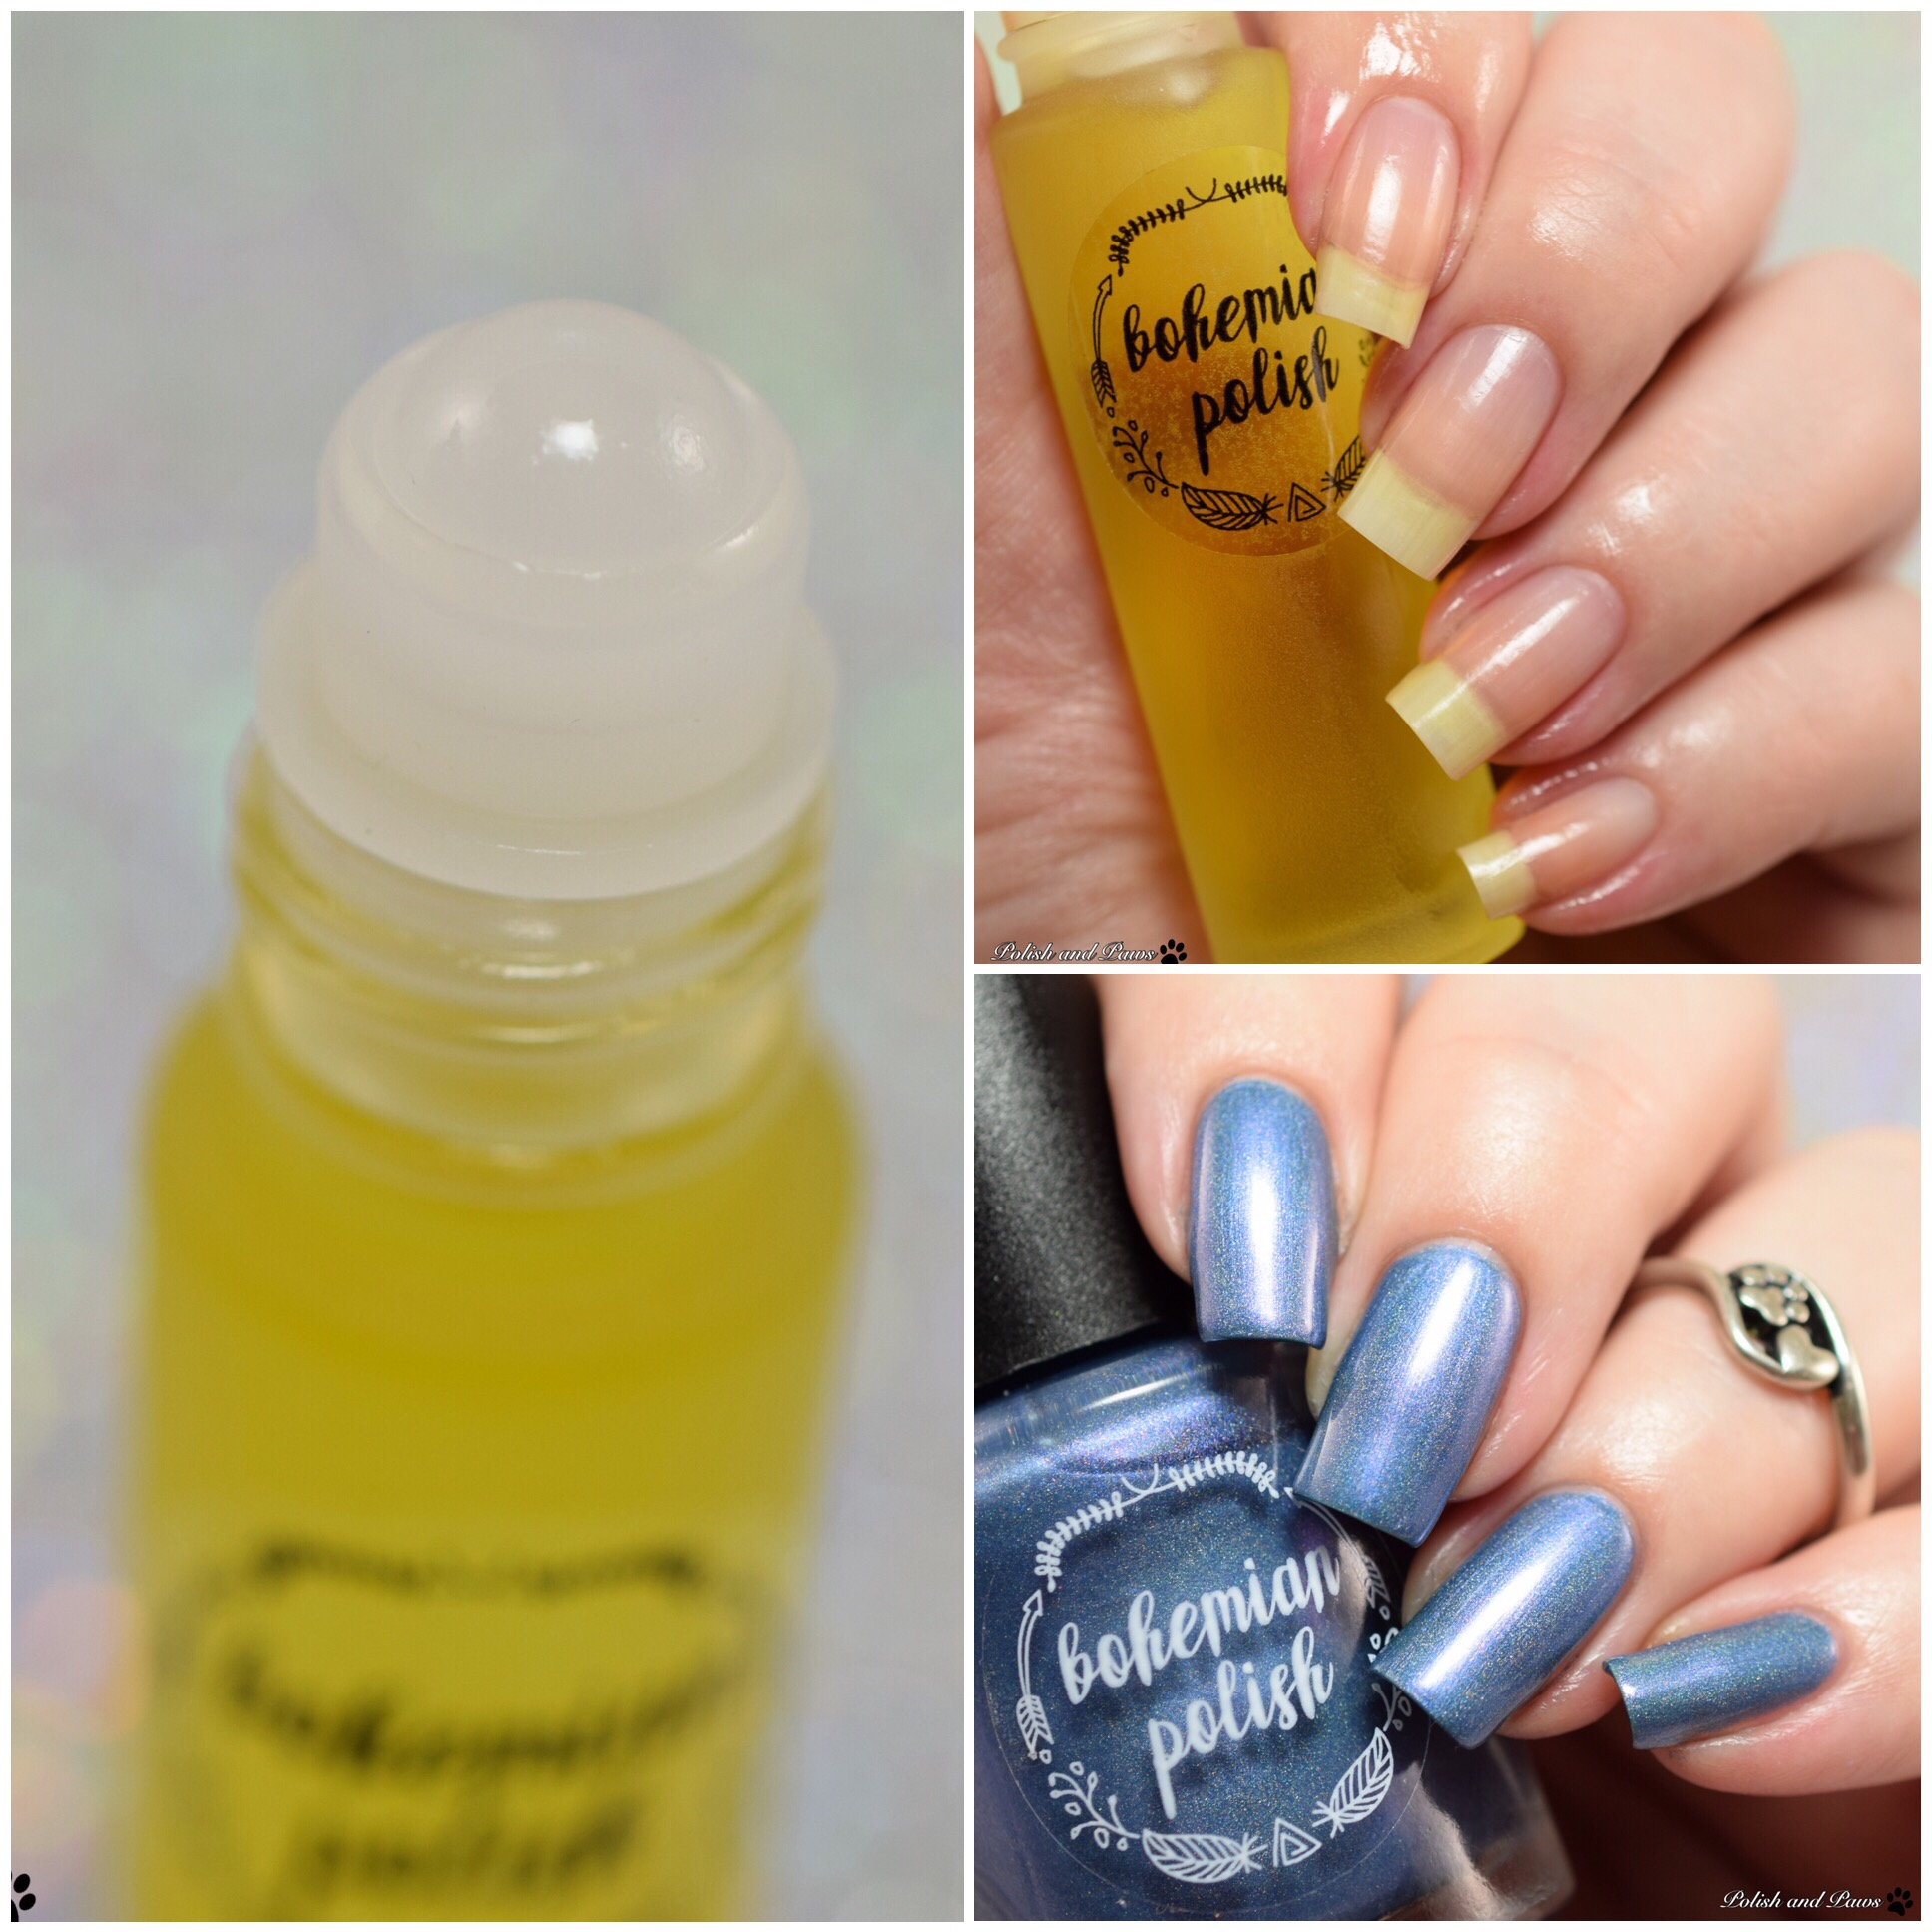 Bohemian Polish Dark Wash and Cuticle Oil | Polish and Paws